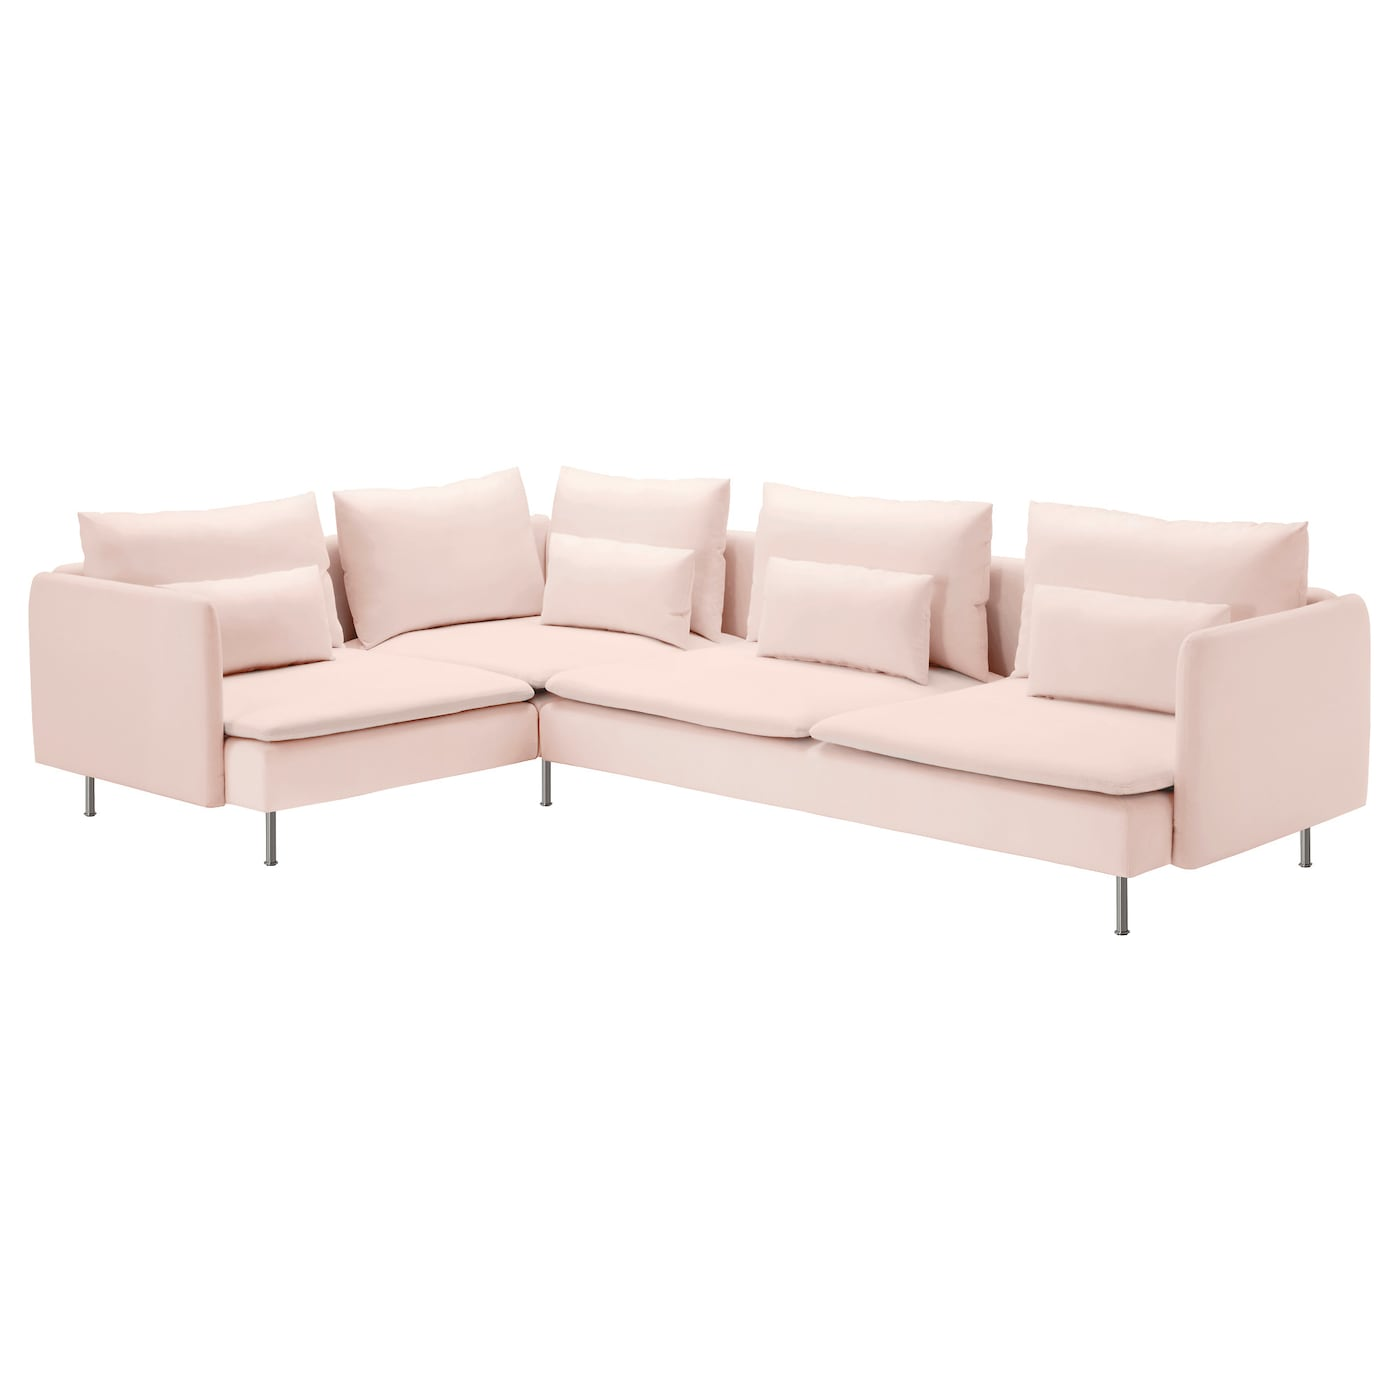 pink sofa ikea diy success dyeing an ikea sofa a new color apartment therapy thesofa. Black Bedroom Furniture Sets. Home Design Ideas